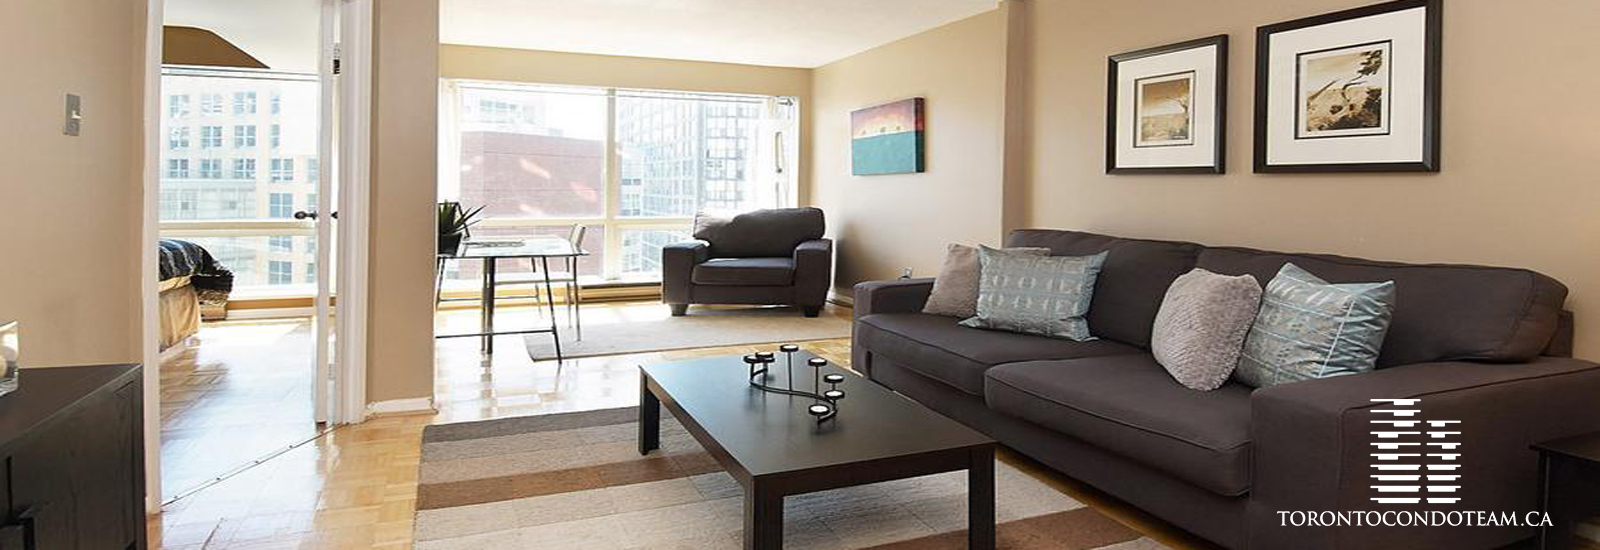 1001 Bay Street Condos For Sale